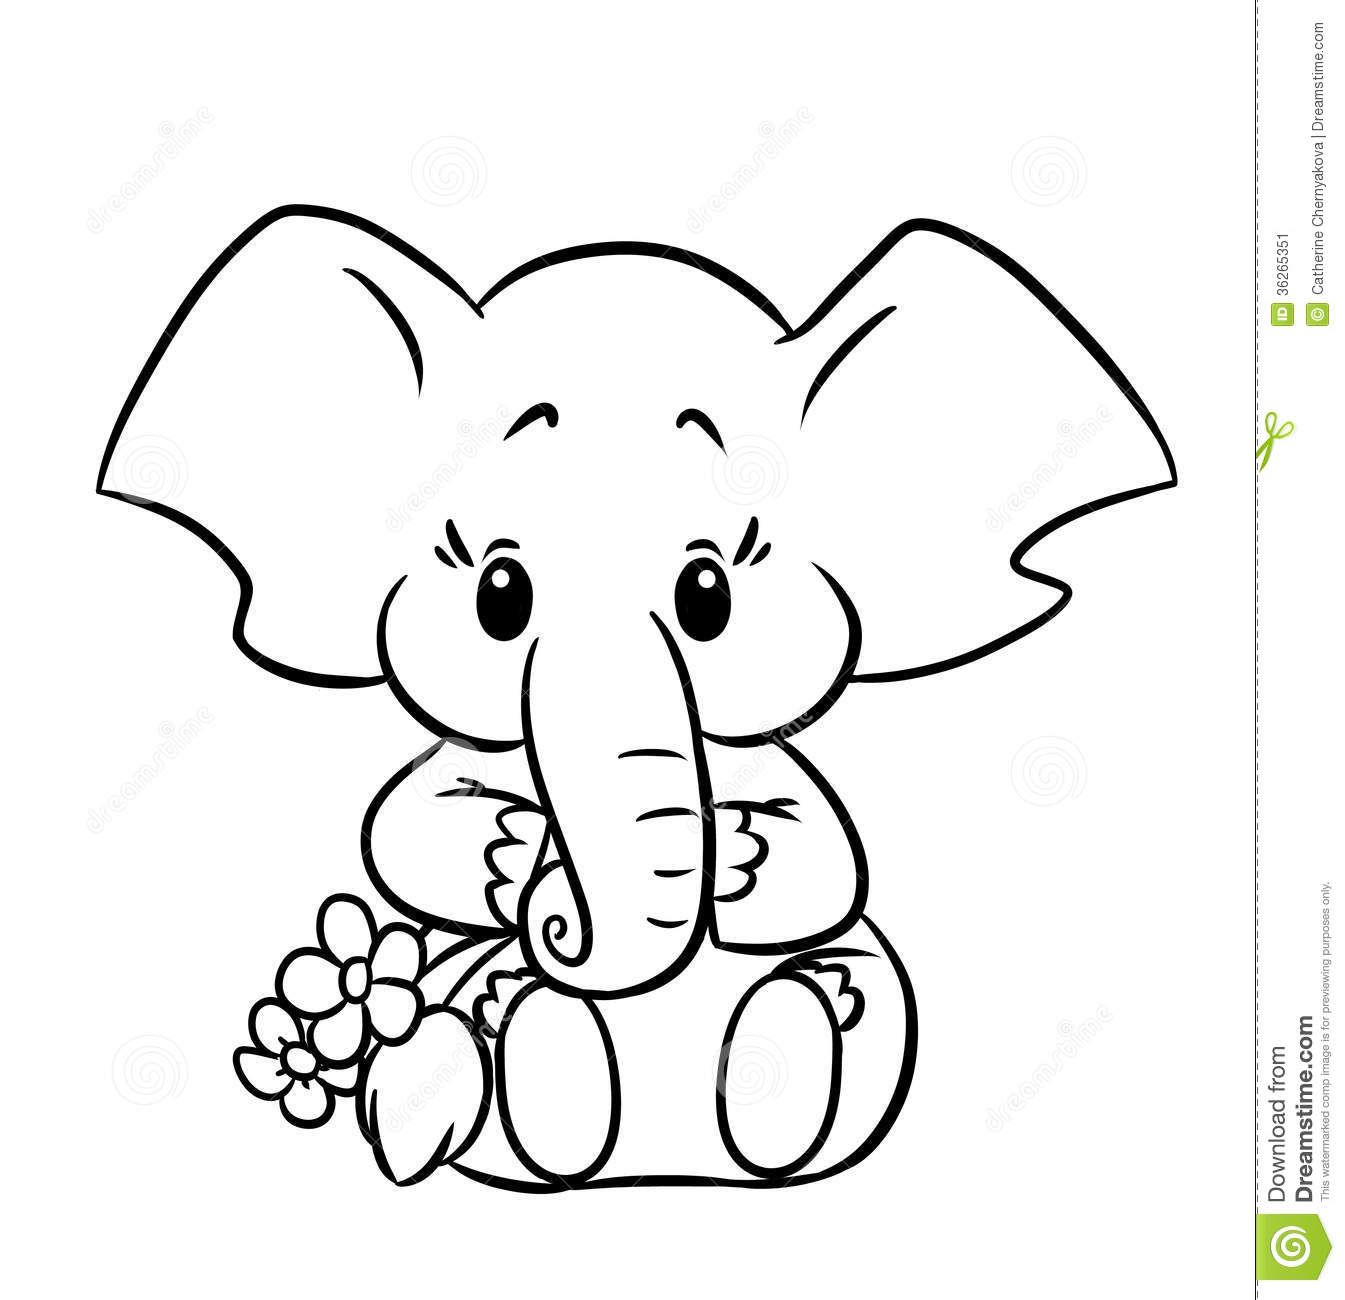 Little baby elephant colouring page | nursery ideas | Pinterest ...